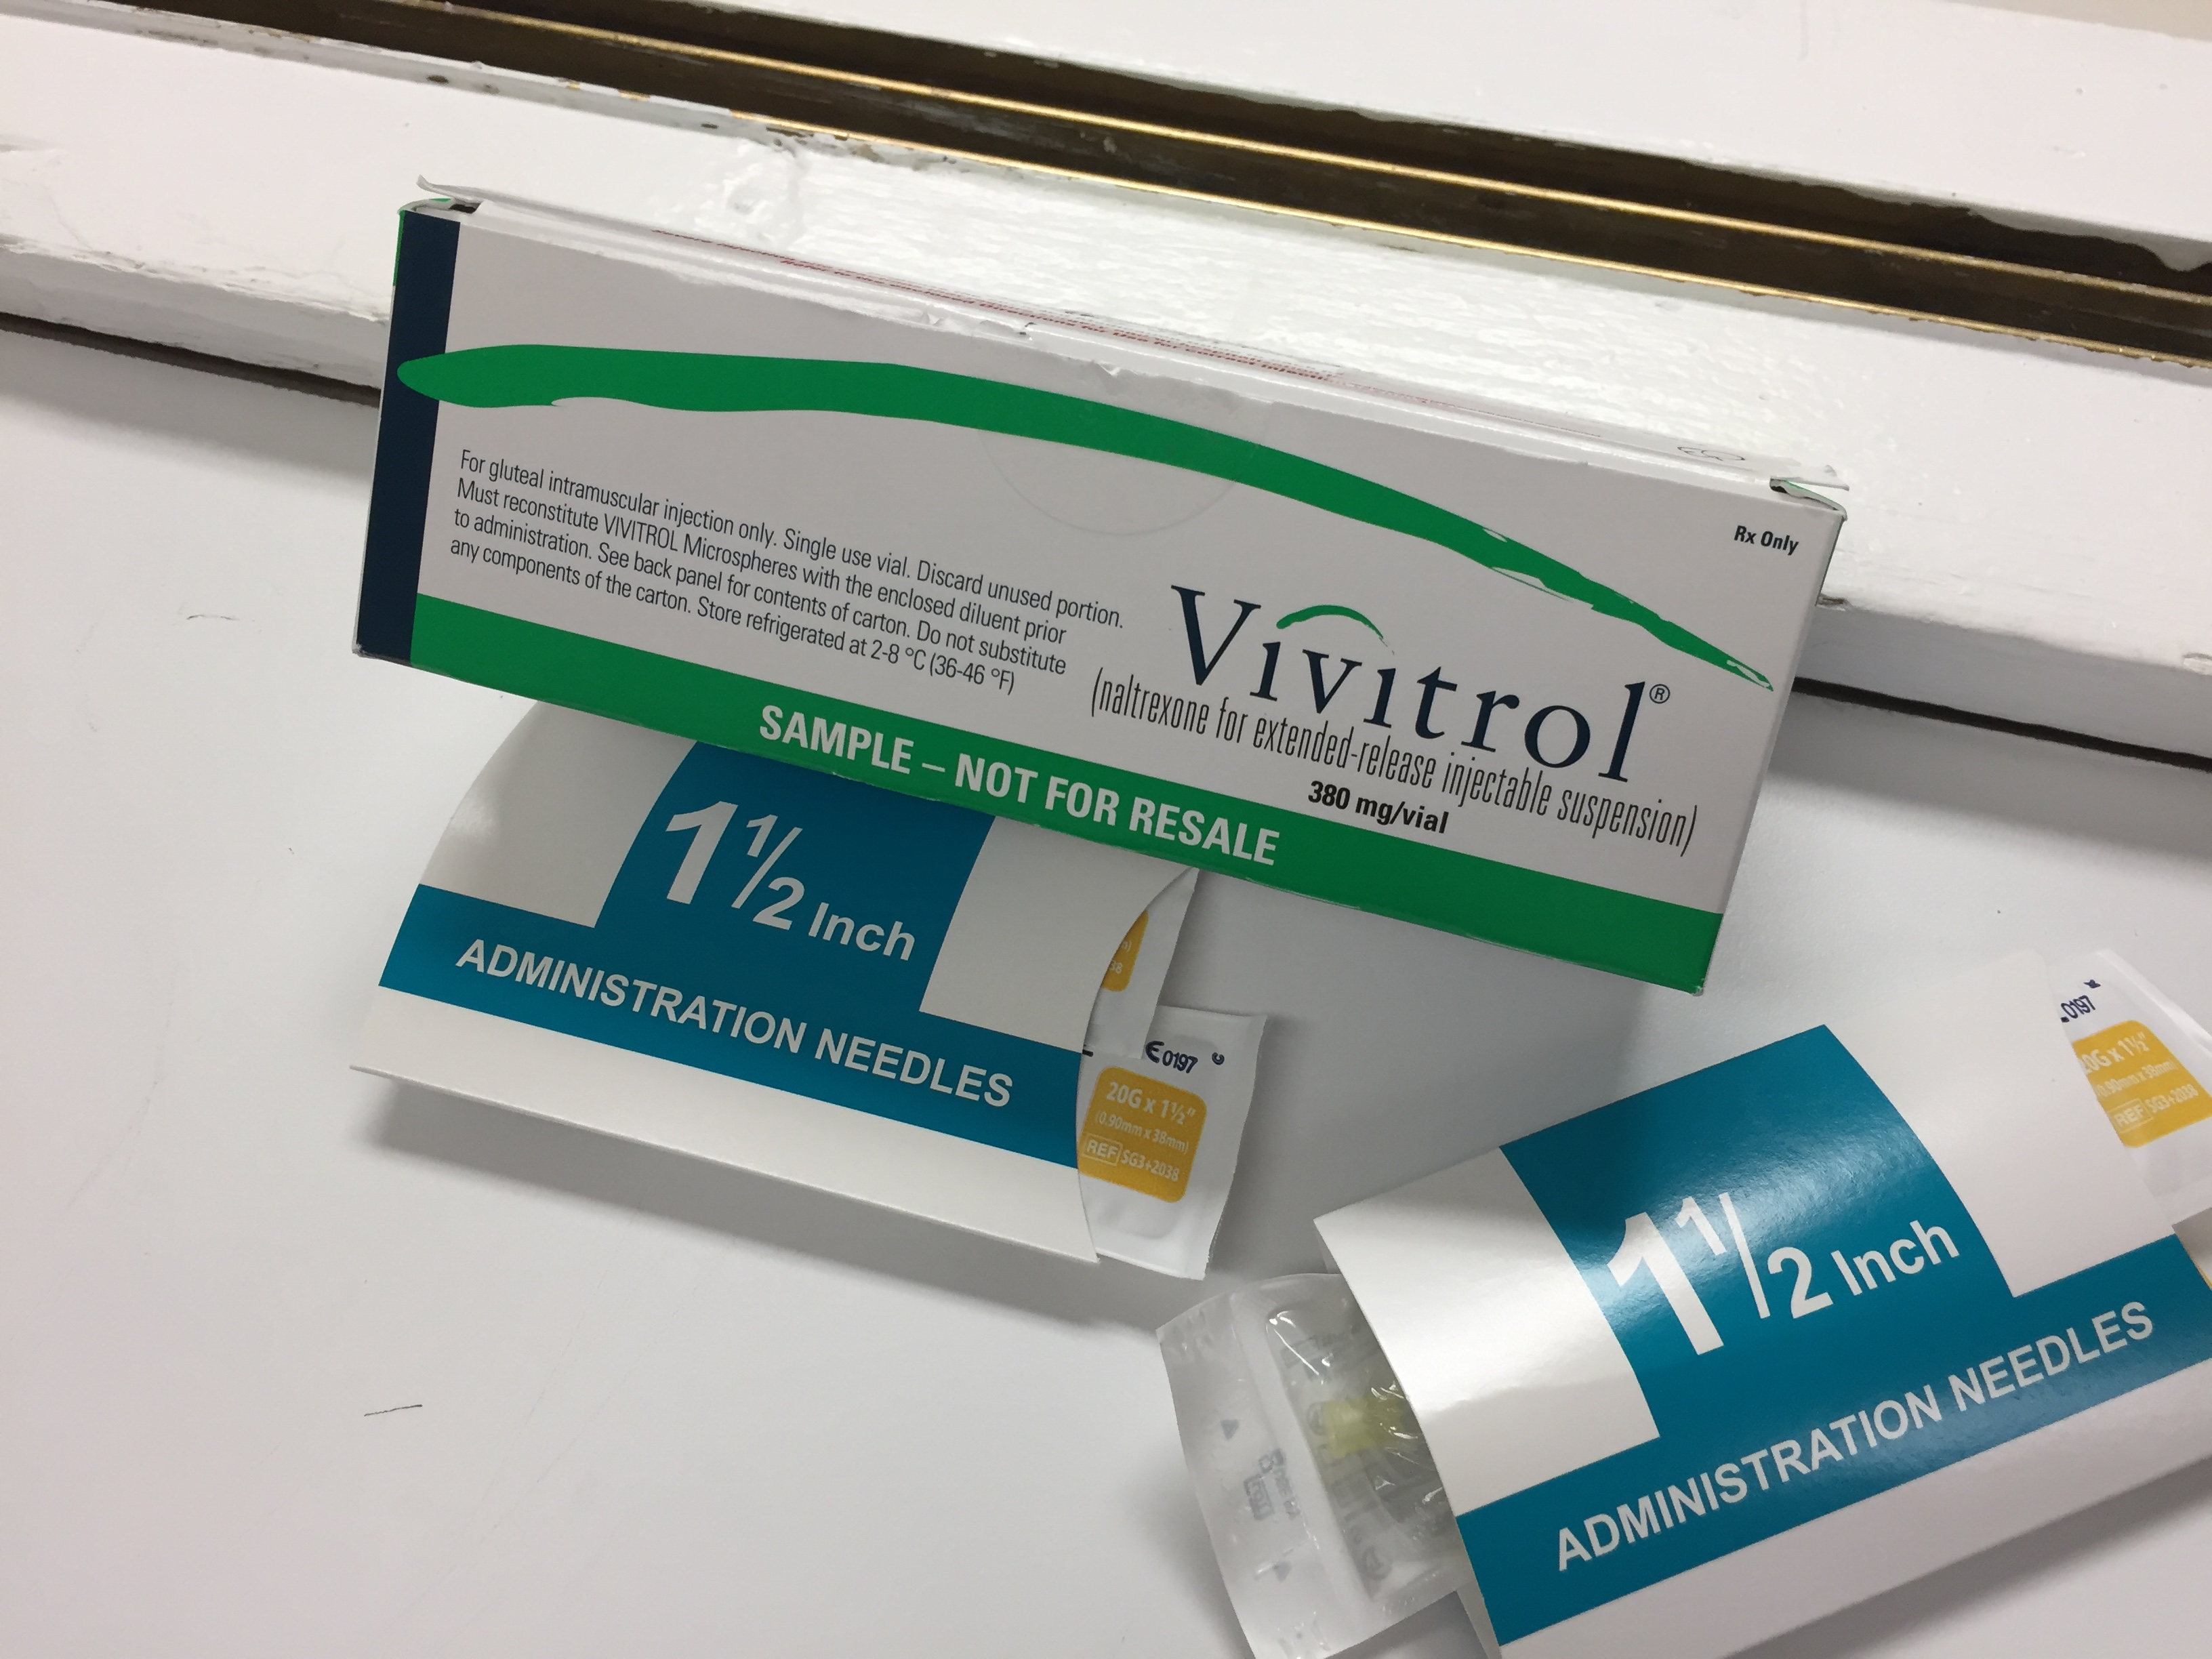 Vivitrol is the injectable form of naltrexone, which cuts cravings for opioids and alcohol. (Photo by Anne Hillman/Alaska Public Media)